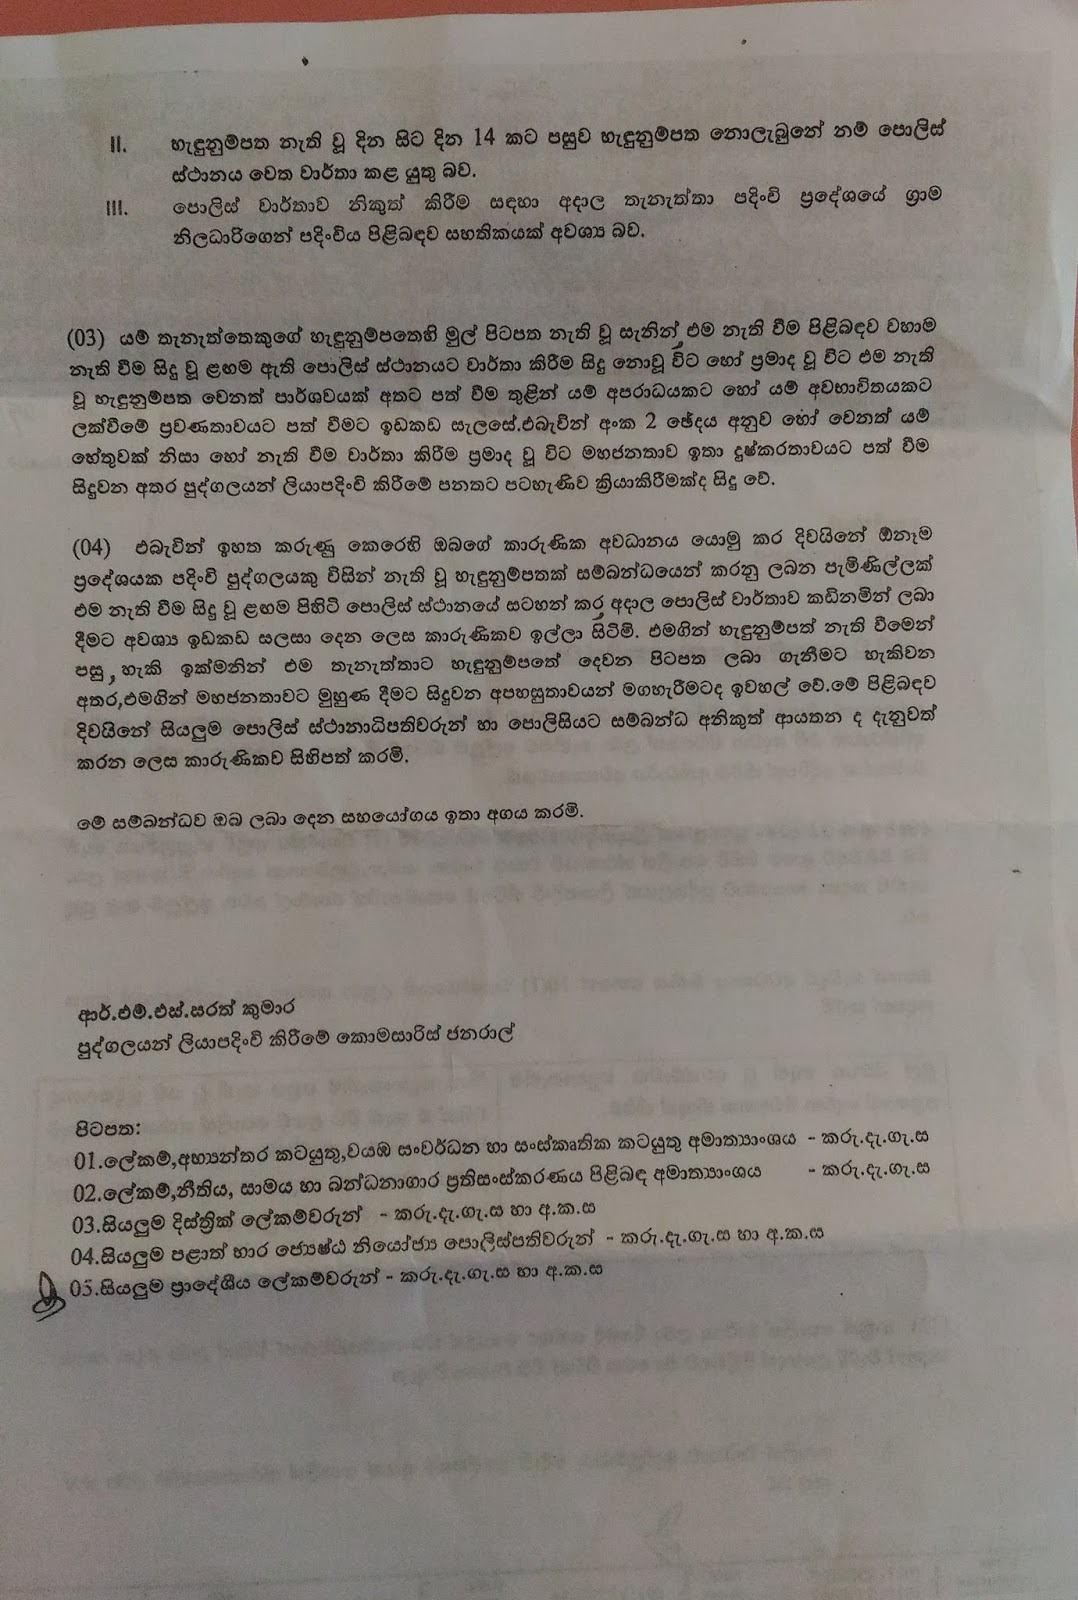 How to get a new sri lankan nic for a lost nic amazing life sample of a police complaint altavistaventures Choice Image